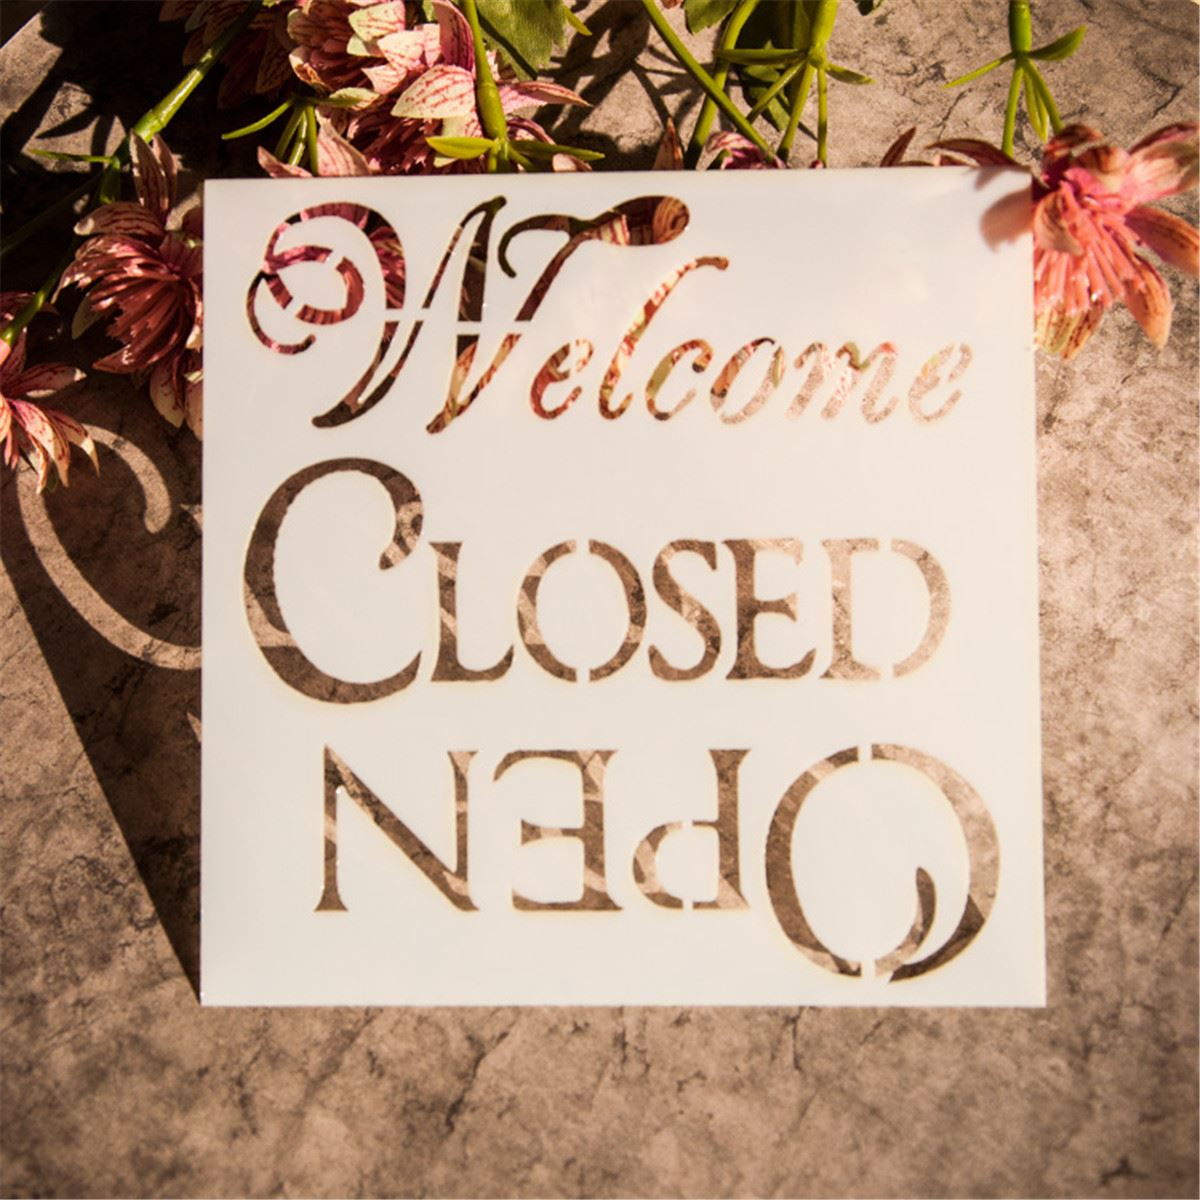 Aliexpress buy welcome letter painting stencils scrapbooking aliexpress buy welcome letter painting stencils scrapbooking decor art wall craft shop store papercrafts design decor airbrush template from reliable amipublicfo Gallery